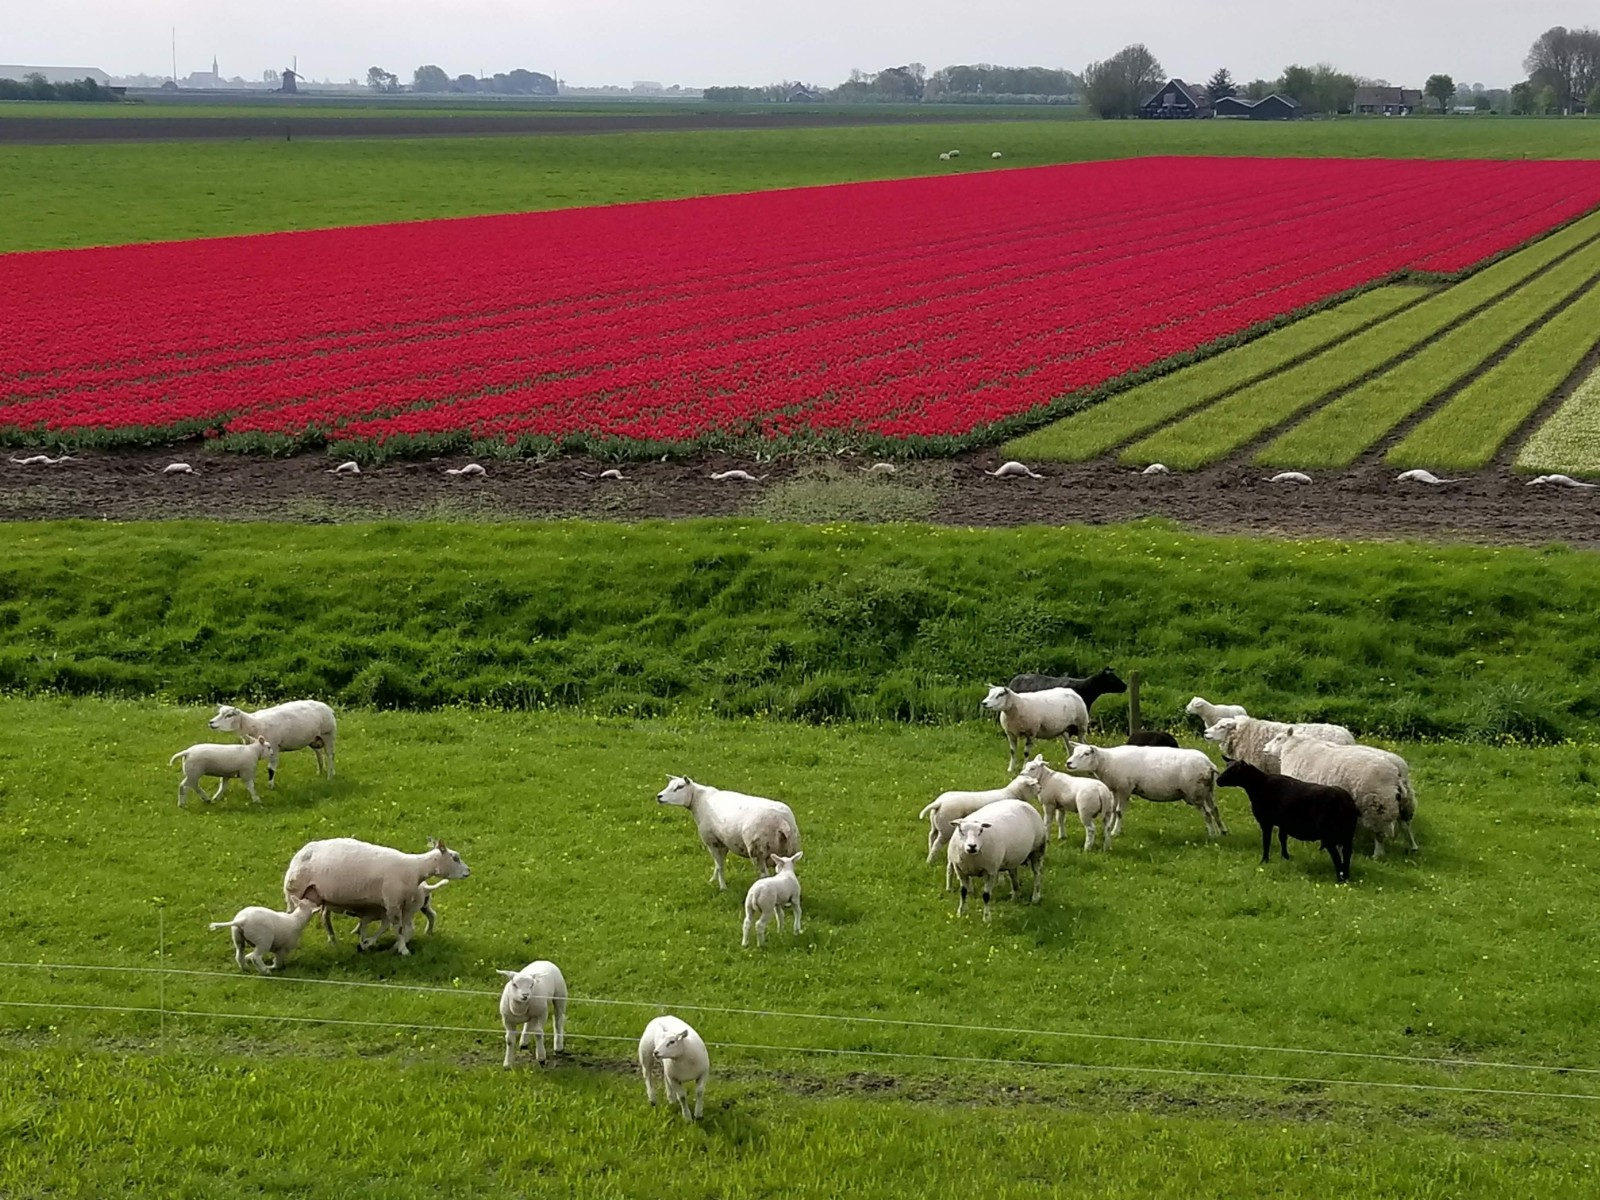 Sheep and tulips in the background